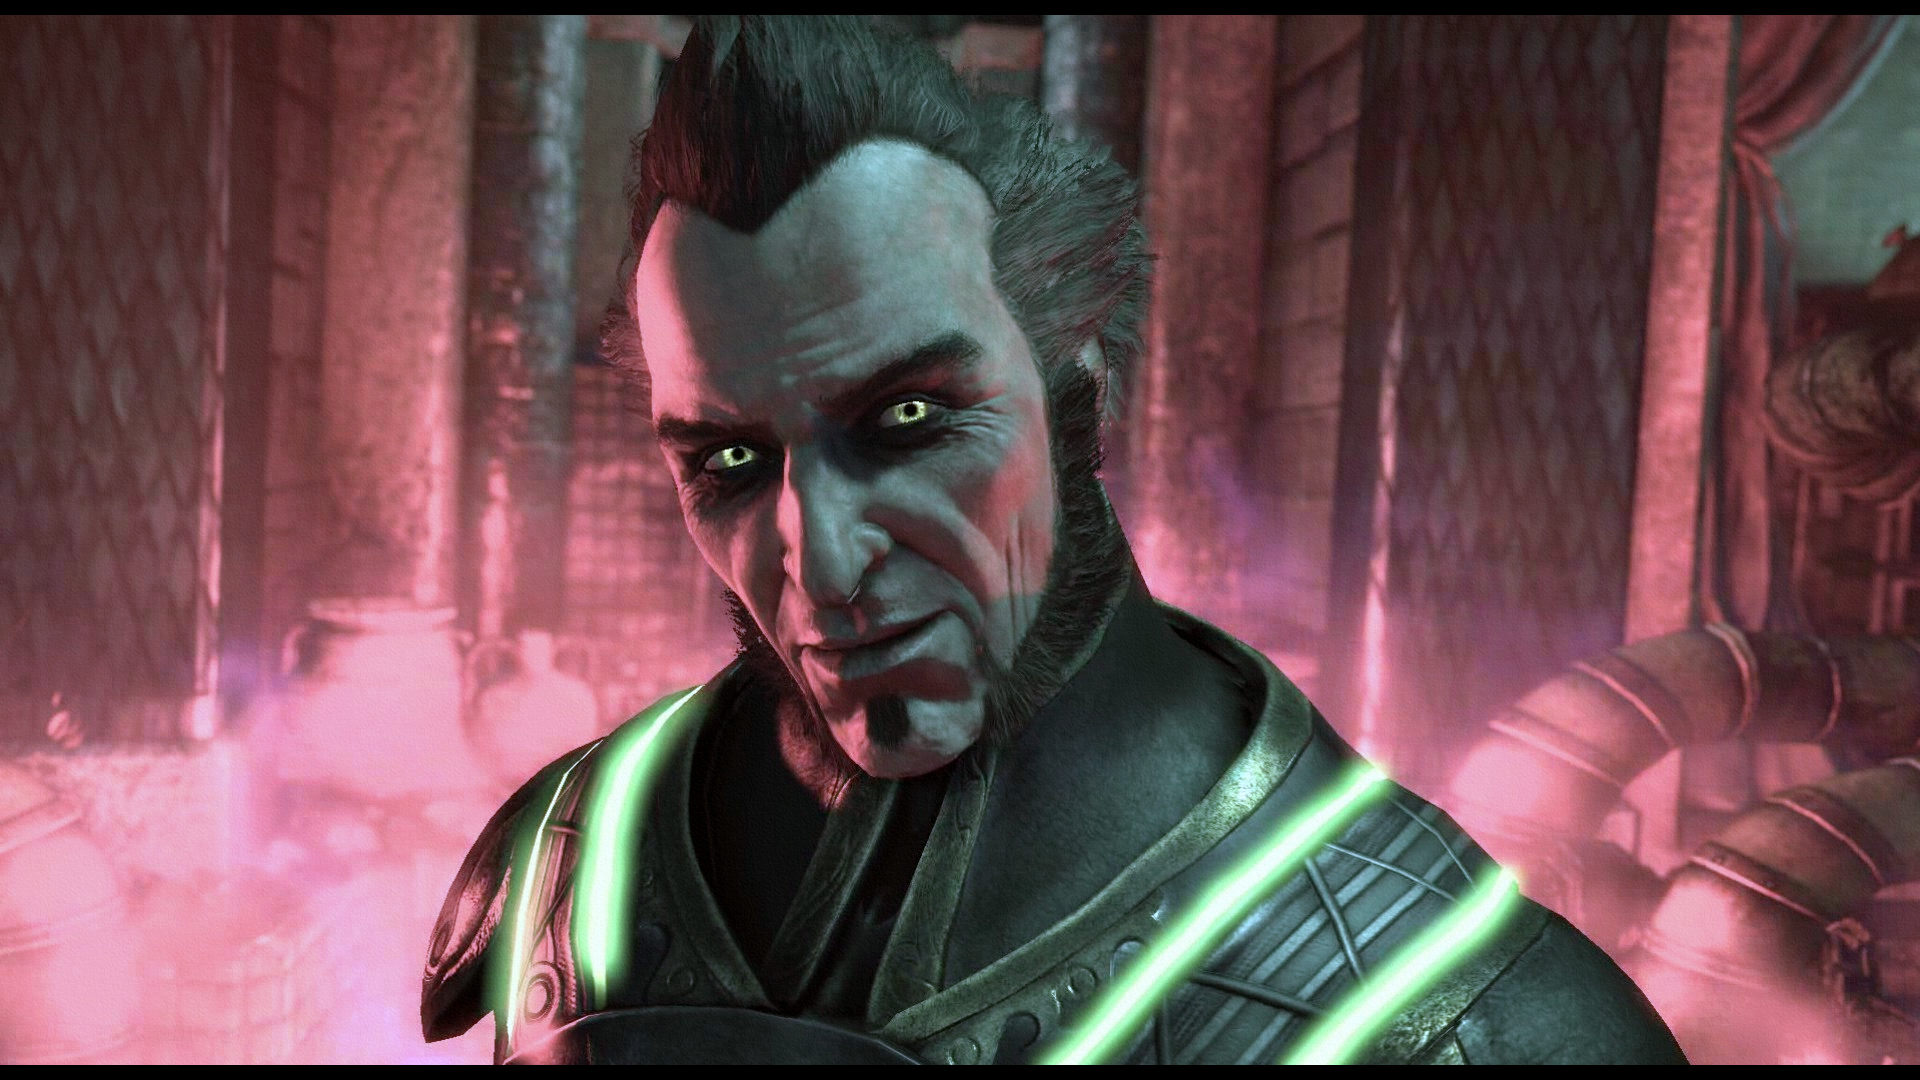 Batman: Arkham Knight - Who is the villain behind the mask?